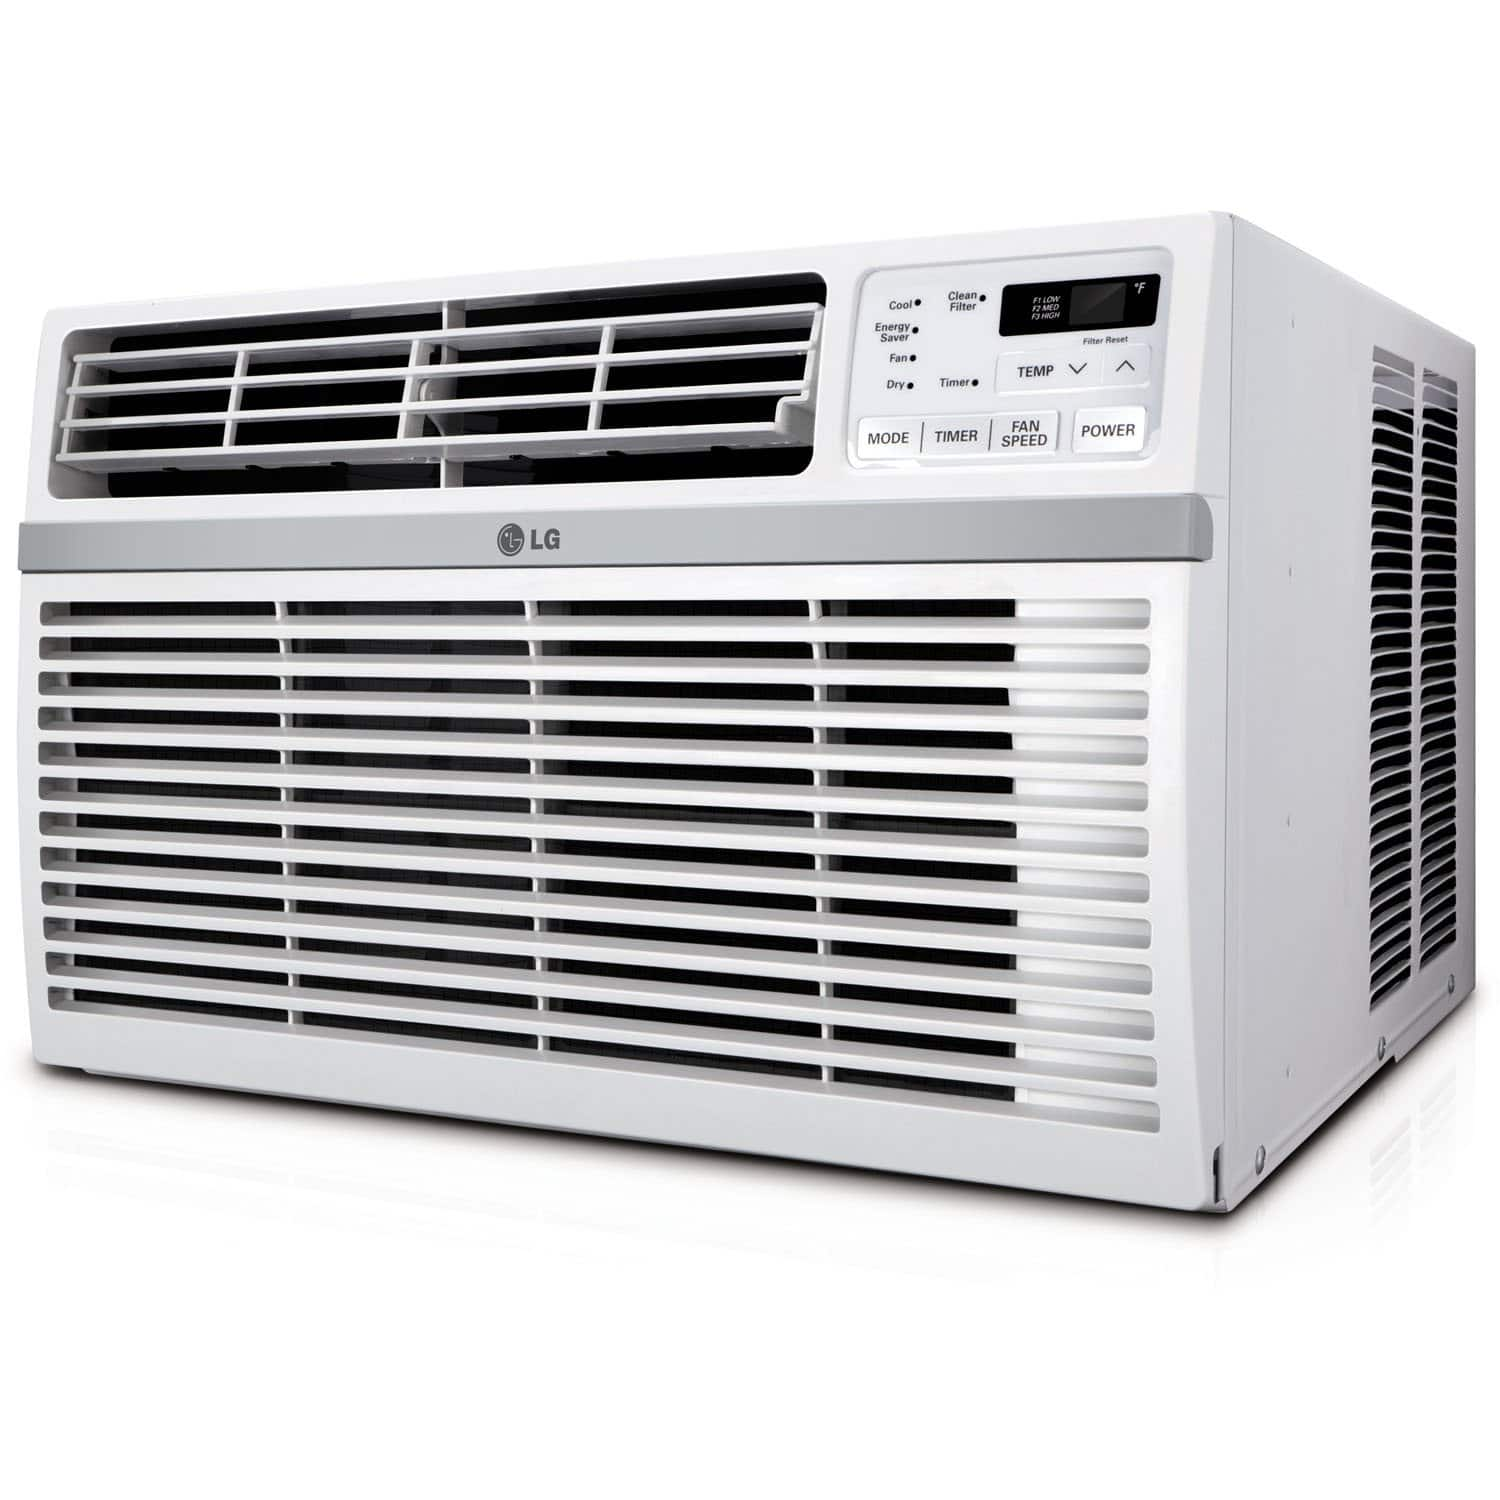 LG LW8016ER 8,000 BTU 115V Window-Mounted Air Conditioner with Remote Control $189 Freeshipping @amazon